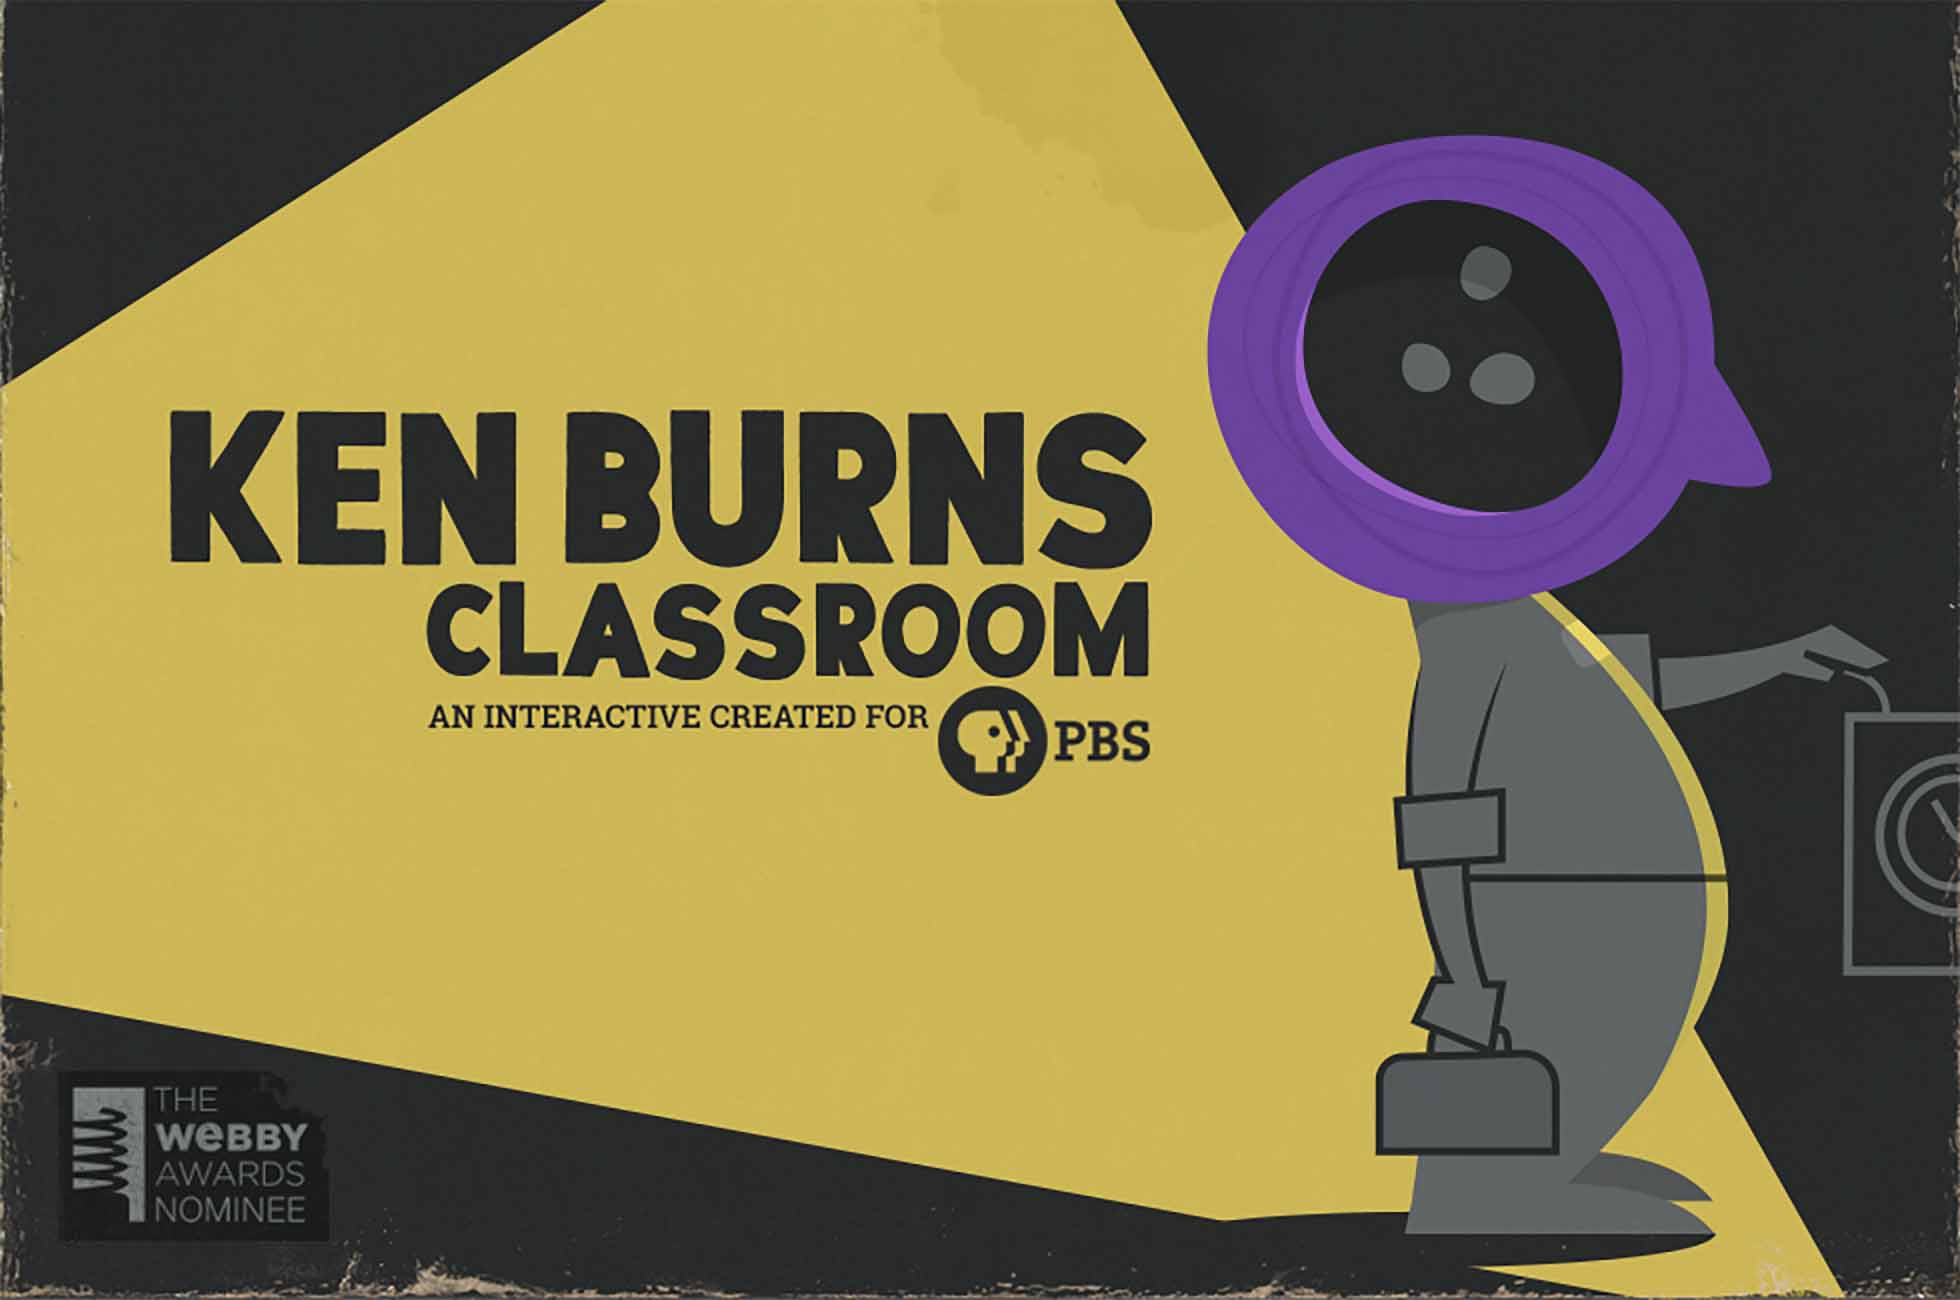 Ken Burns Classroom is an interactive created for PBS.